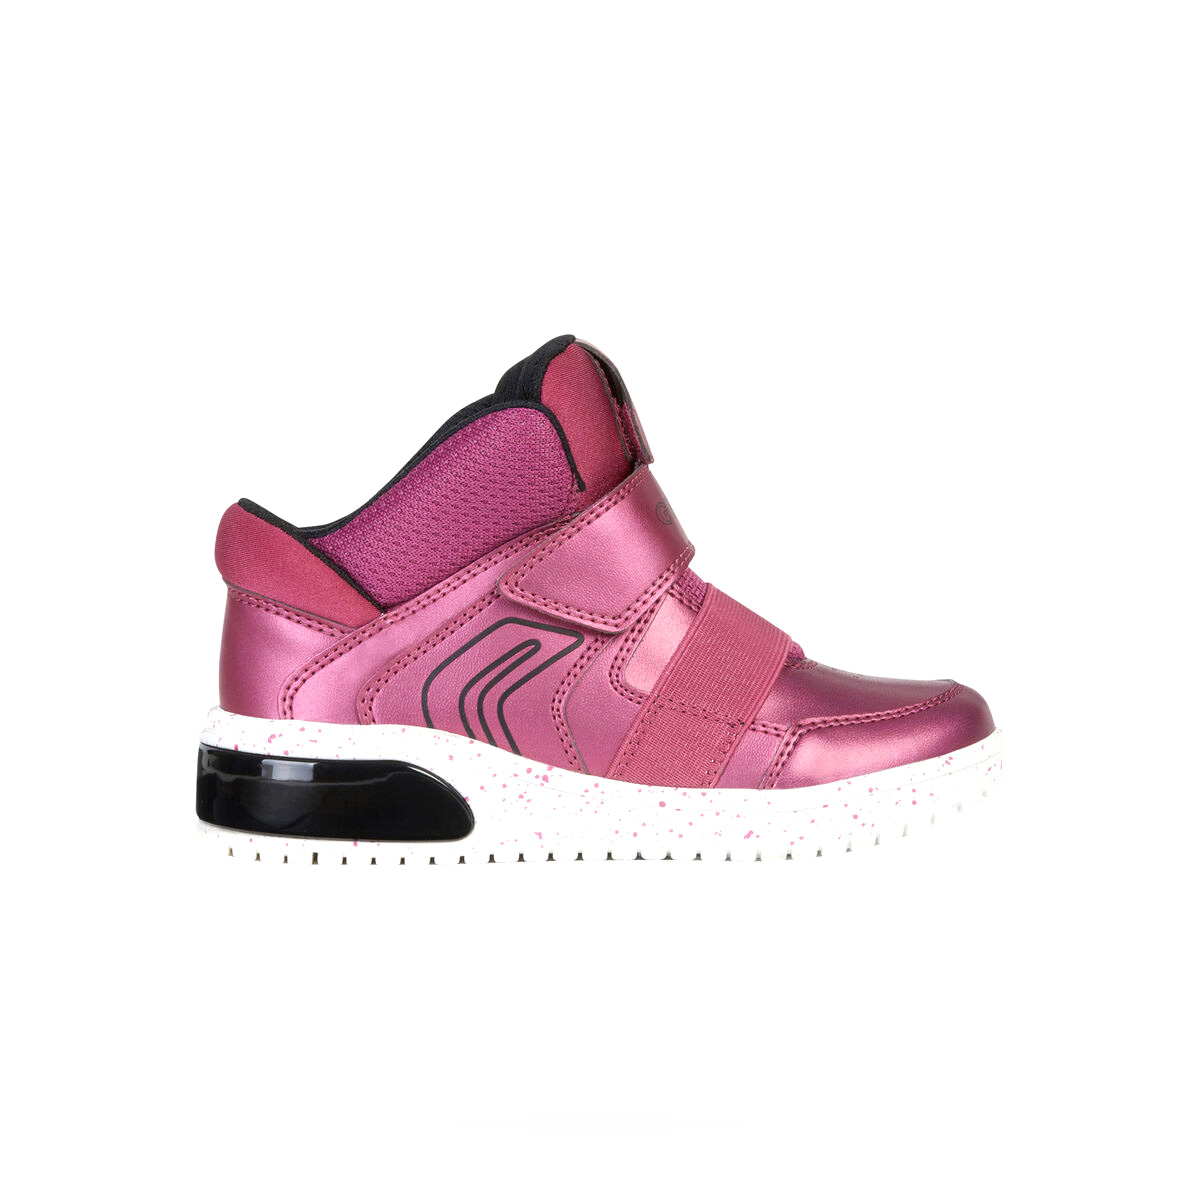 GEOX XLED SNEAKER JUNIOR GIRL CON LUCI PERSONALIZZATE